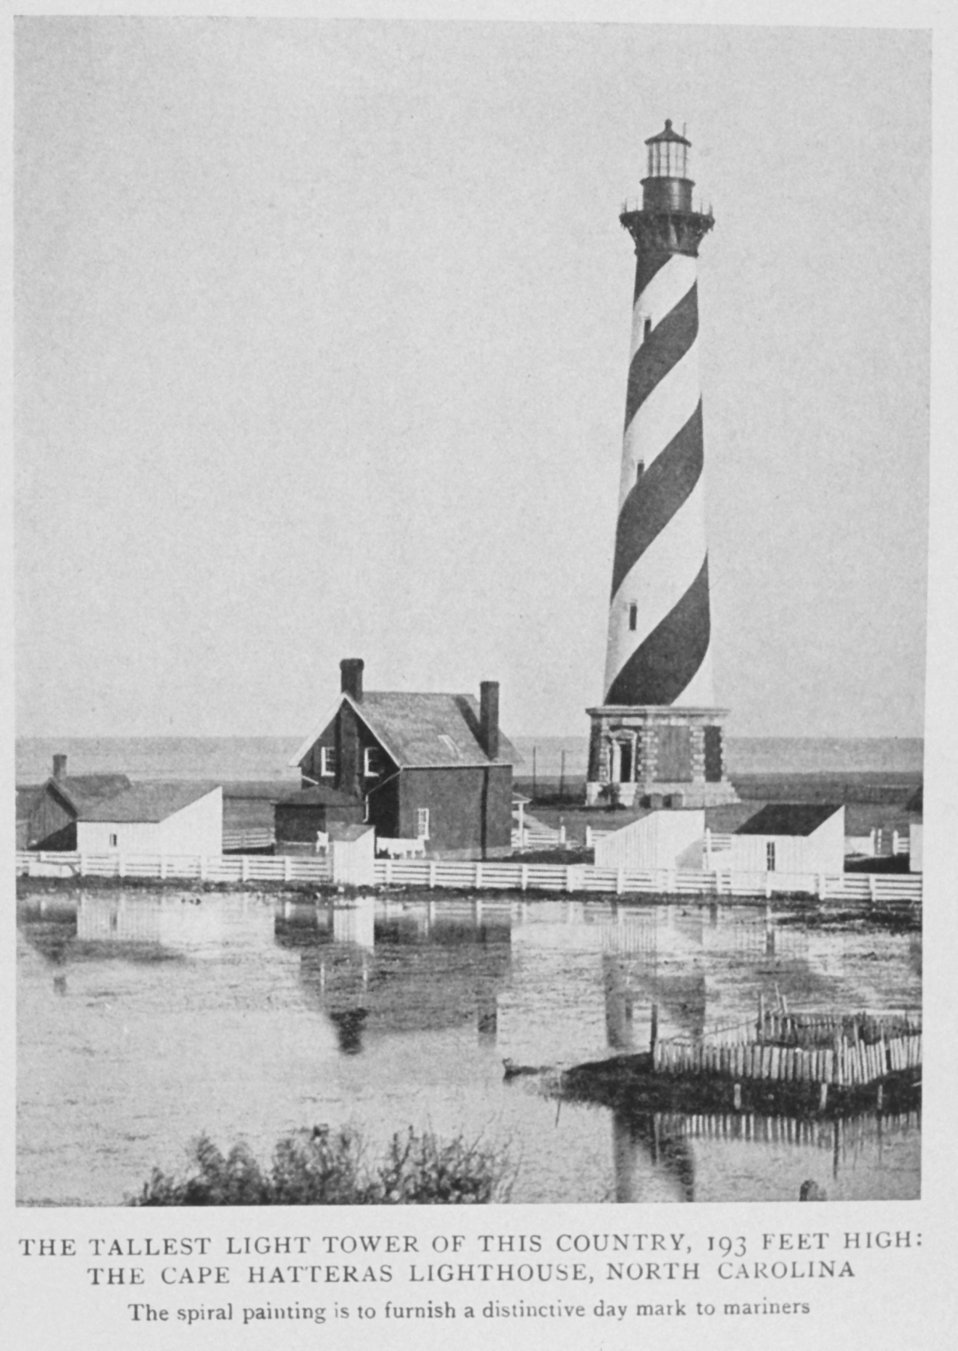 The Tallest Lighthouse Tower of this Country, 193 Feet High; The Cape Hatteras Lighthouse, North Carolina. The spiral painting is to furnish a distinctive day mark to mariners.  In: 'Lighthouses and Lightships of the United States' by George R. Putnam,